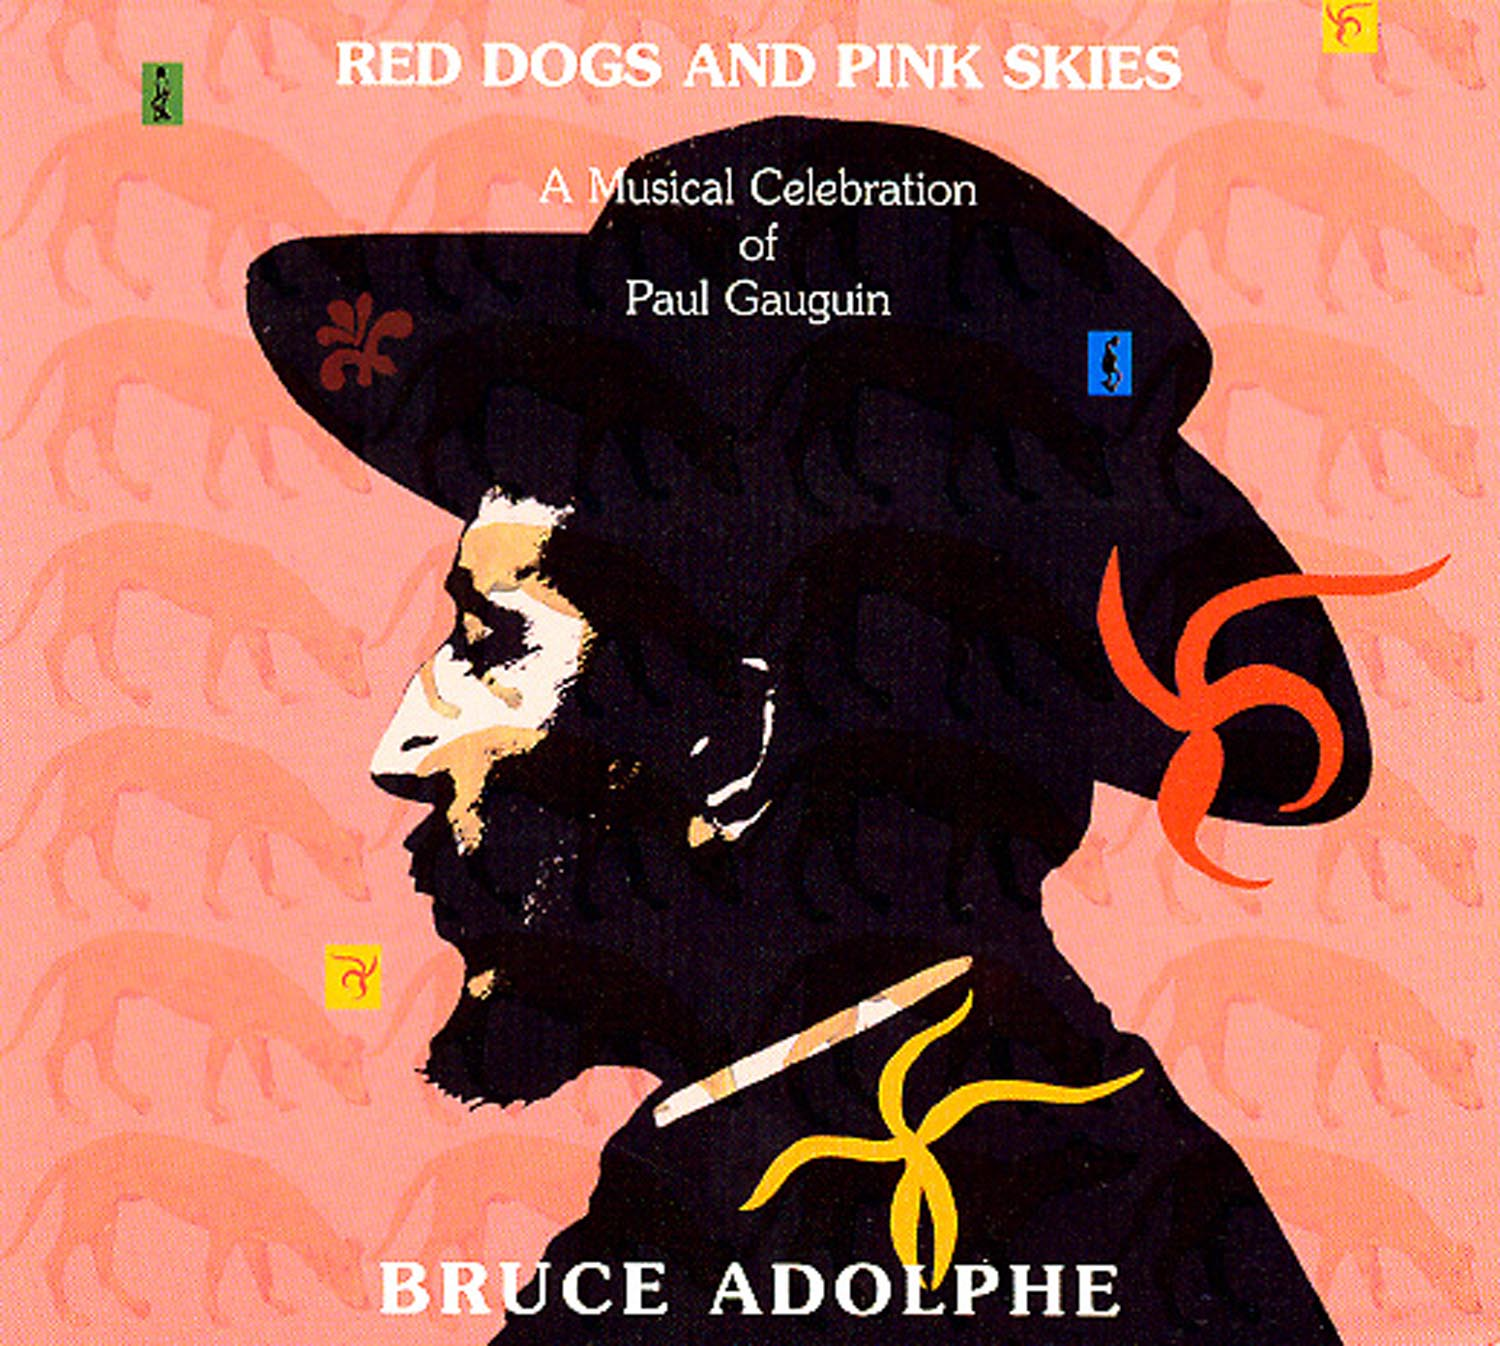 Red Dogs CD copy.JPG